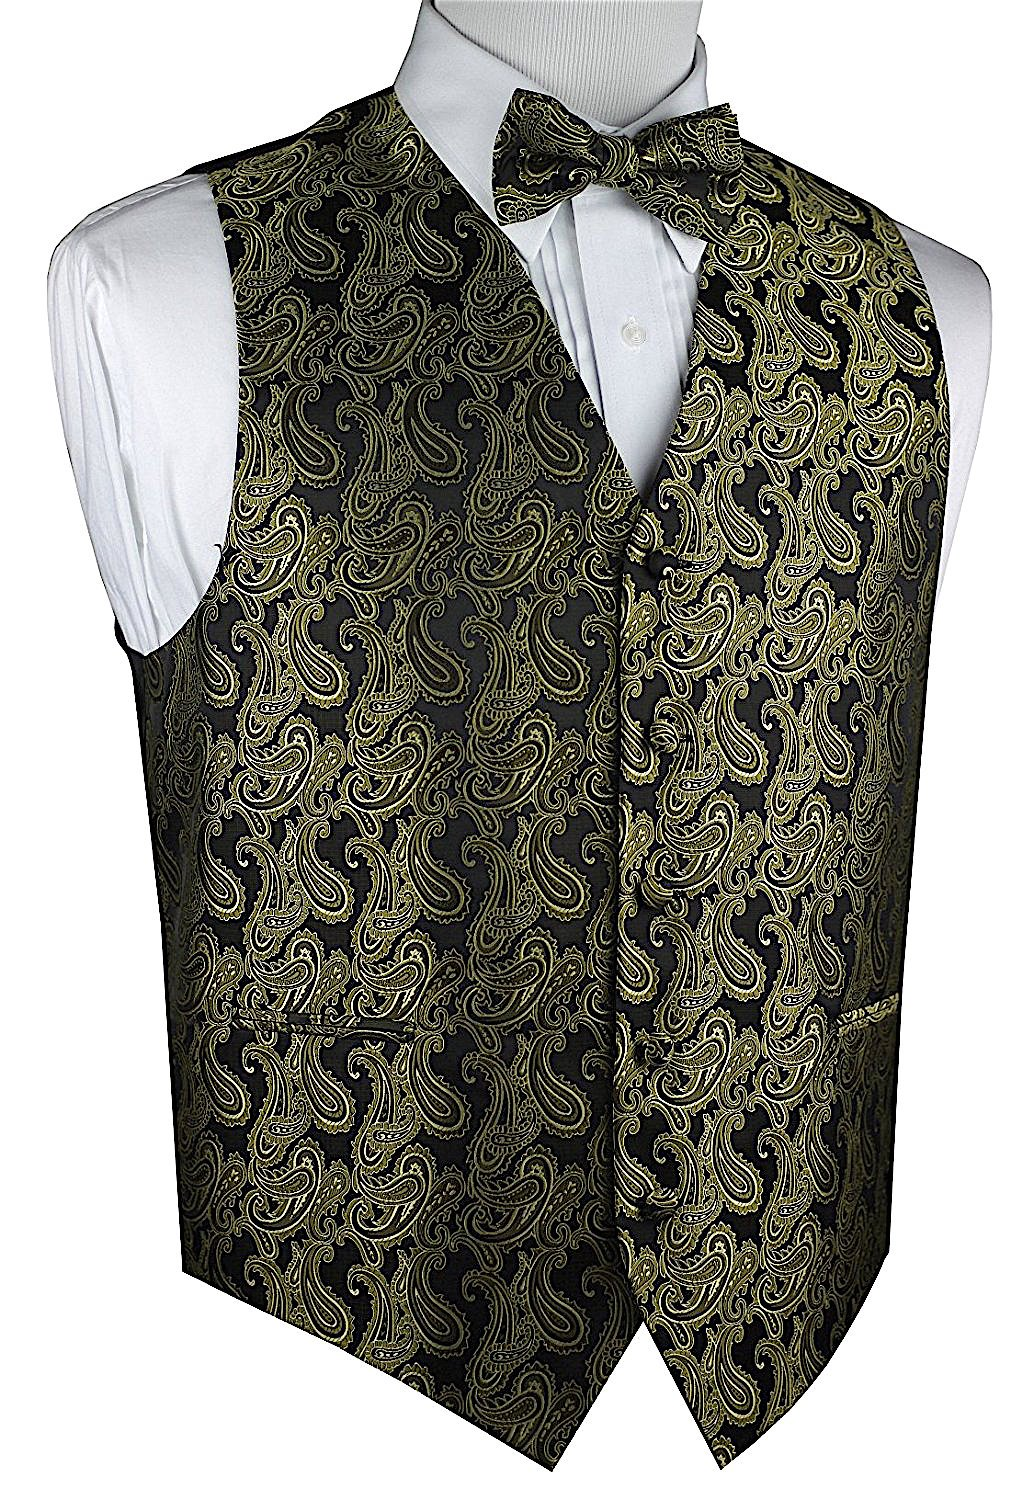 Brand Q Men's Paisley Vest Bow Tie Set-Olive Green-3XL